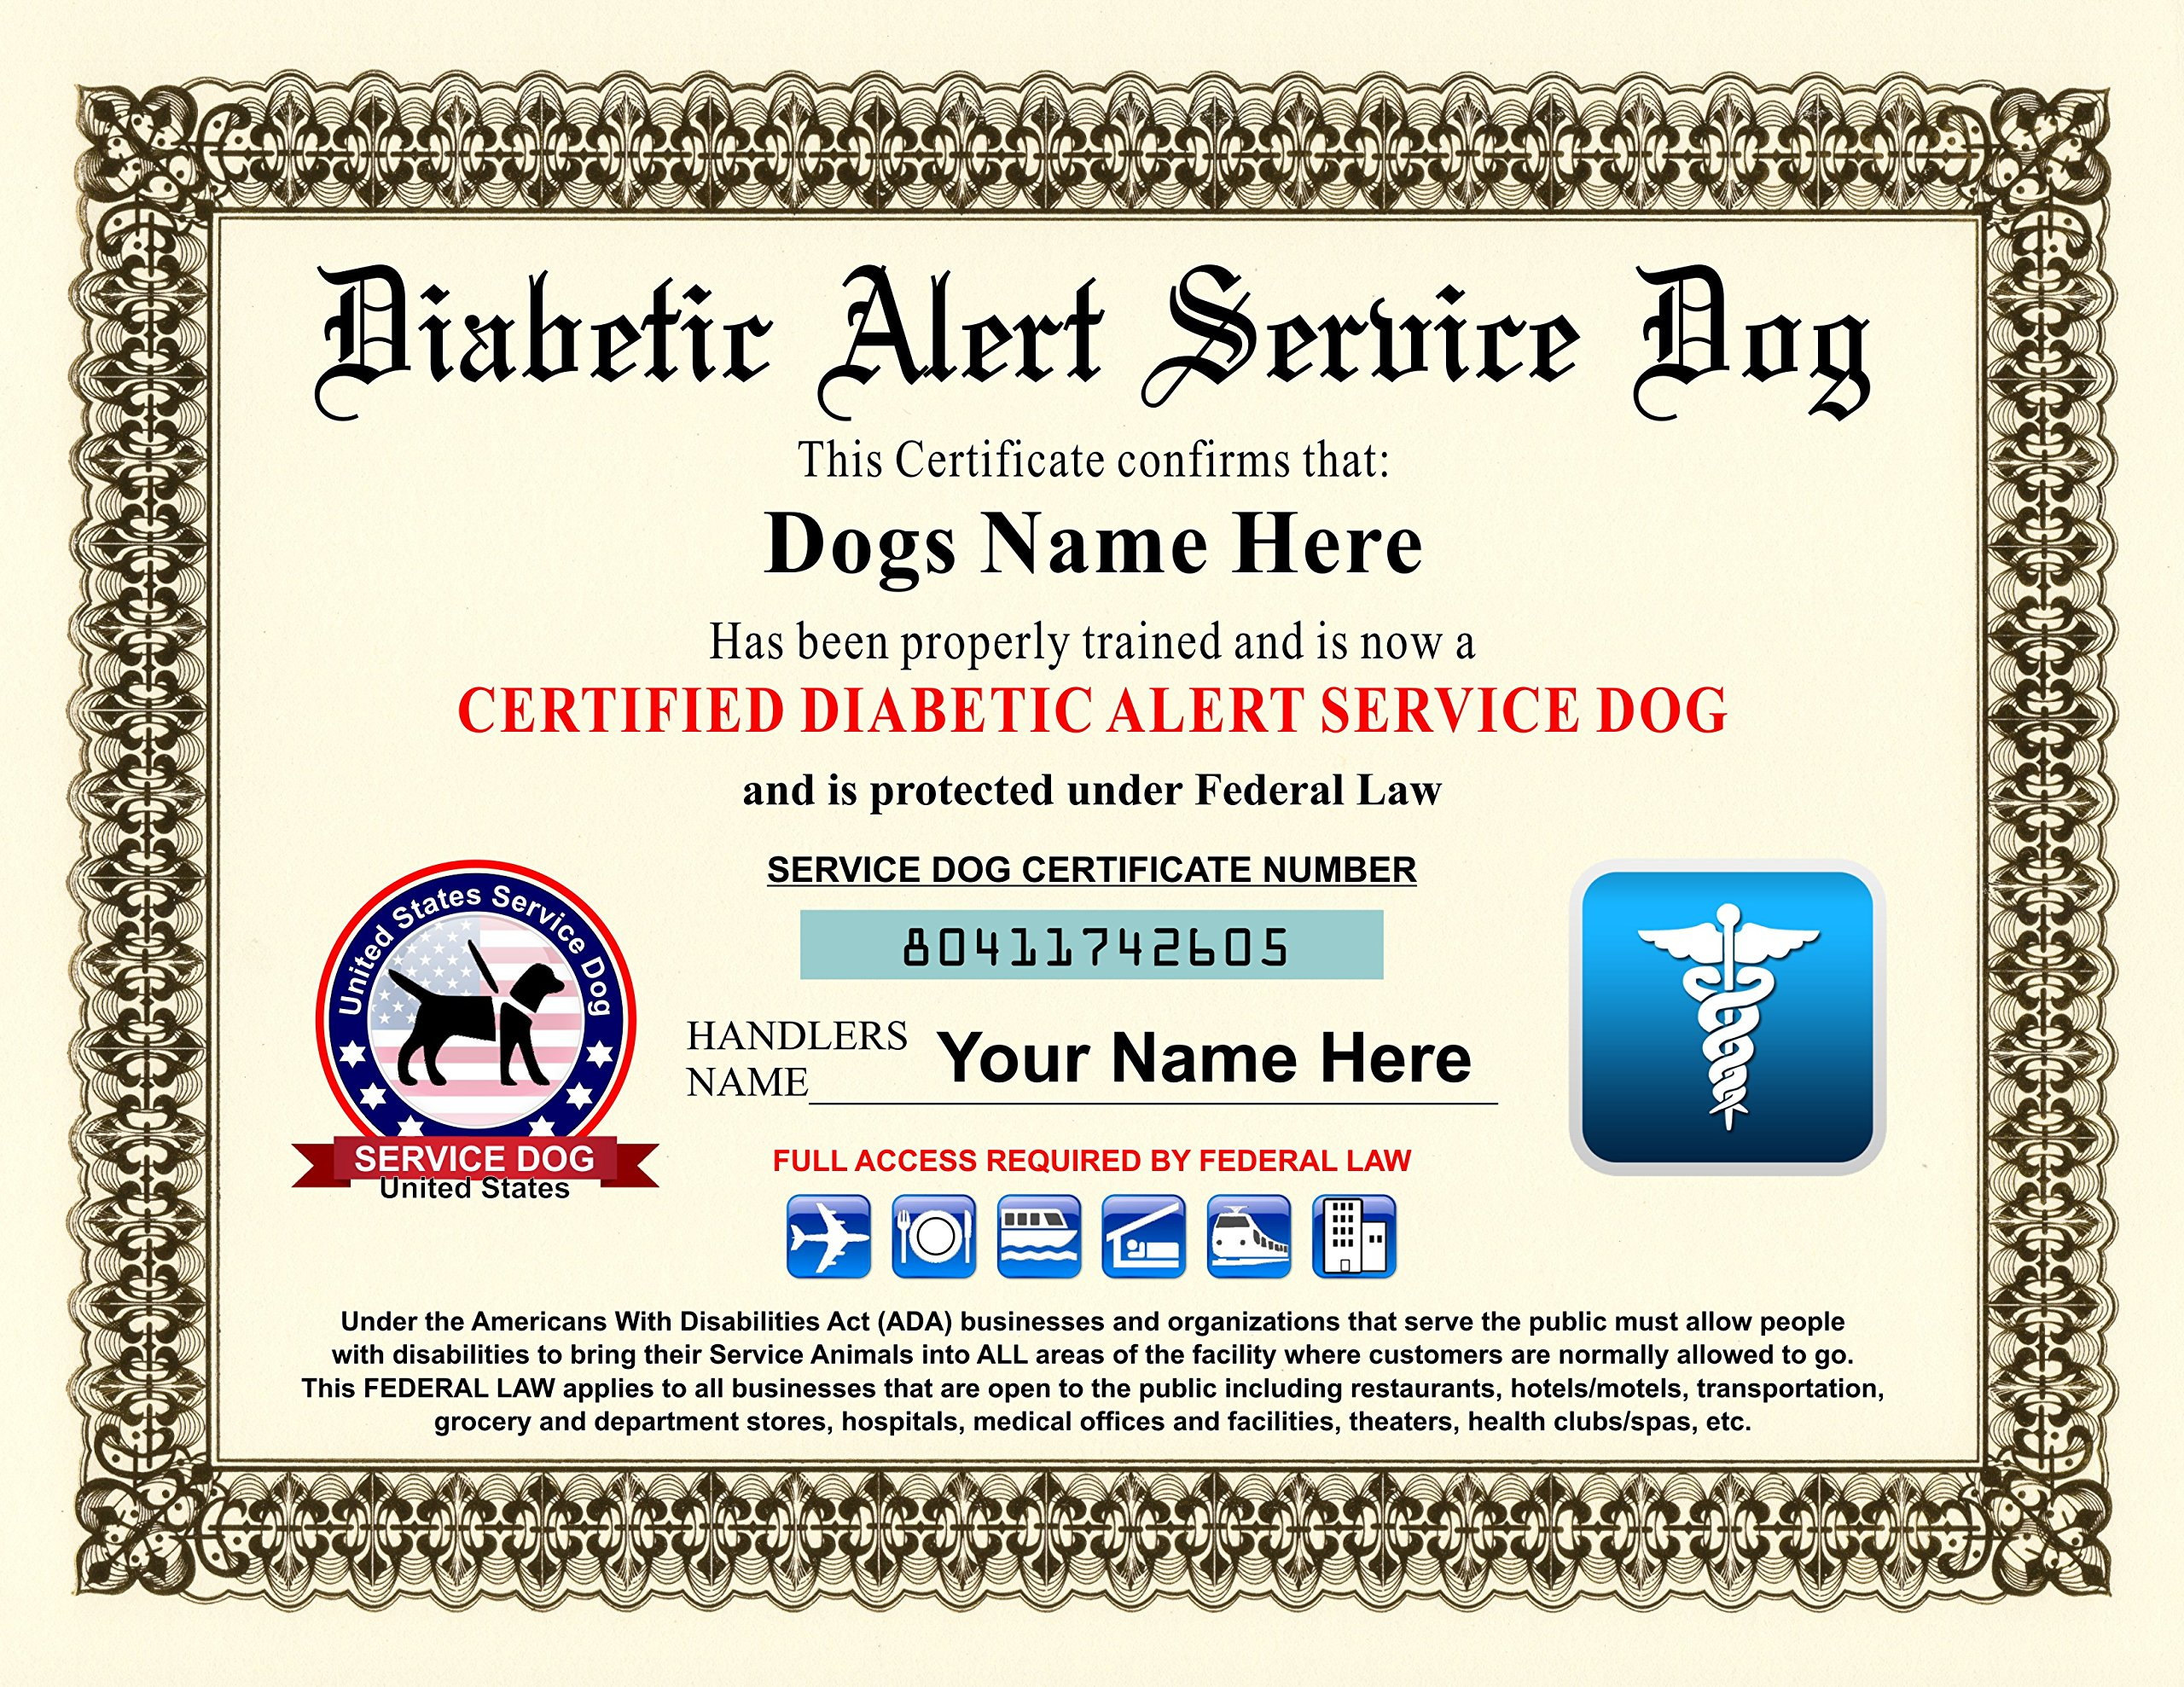 Innovative ID Cards Diabetic Alert Service Dog Certificate - Customizable with Dogs/Handlers Name by Innovative ID Cards